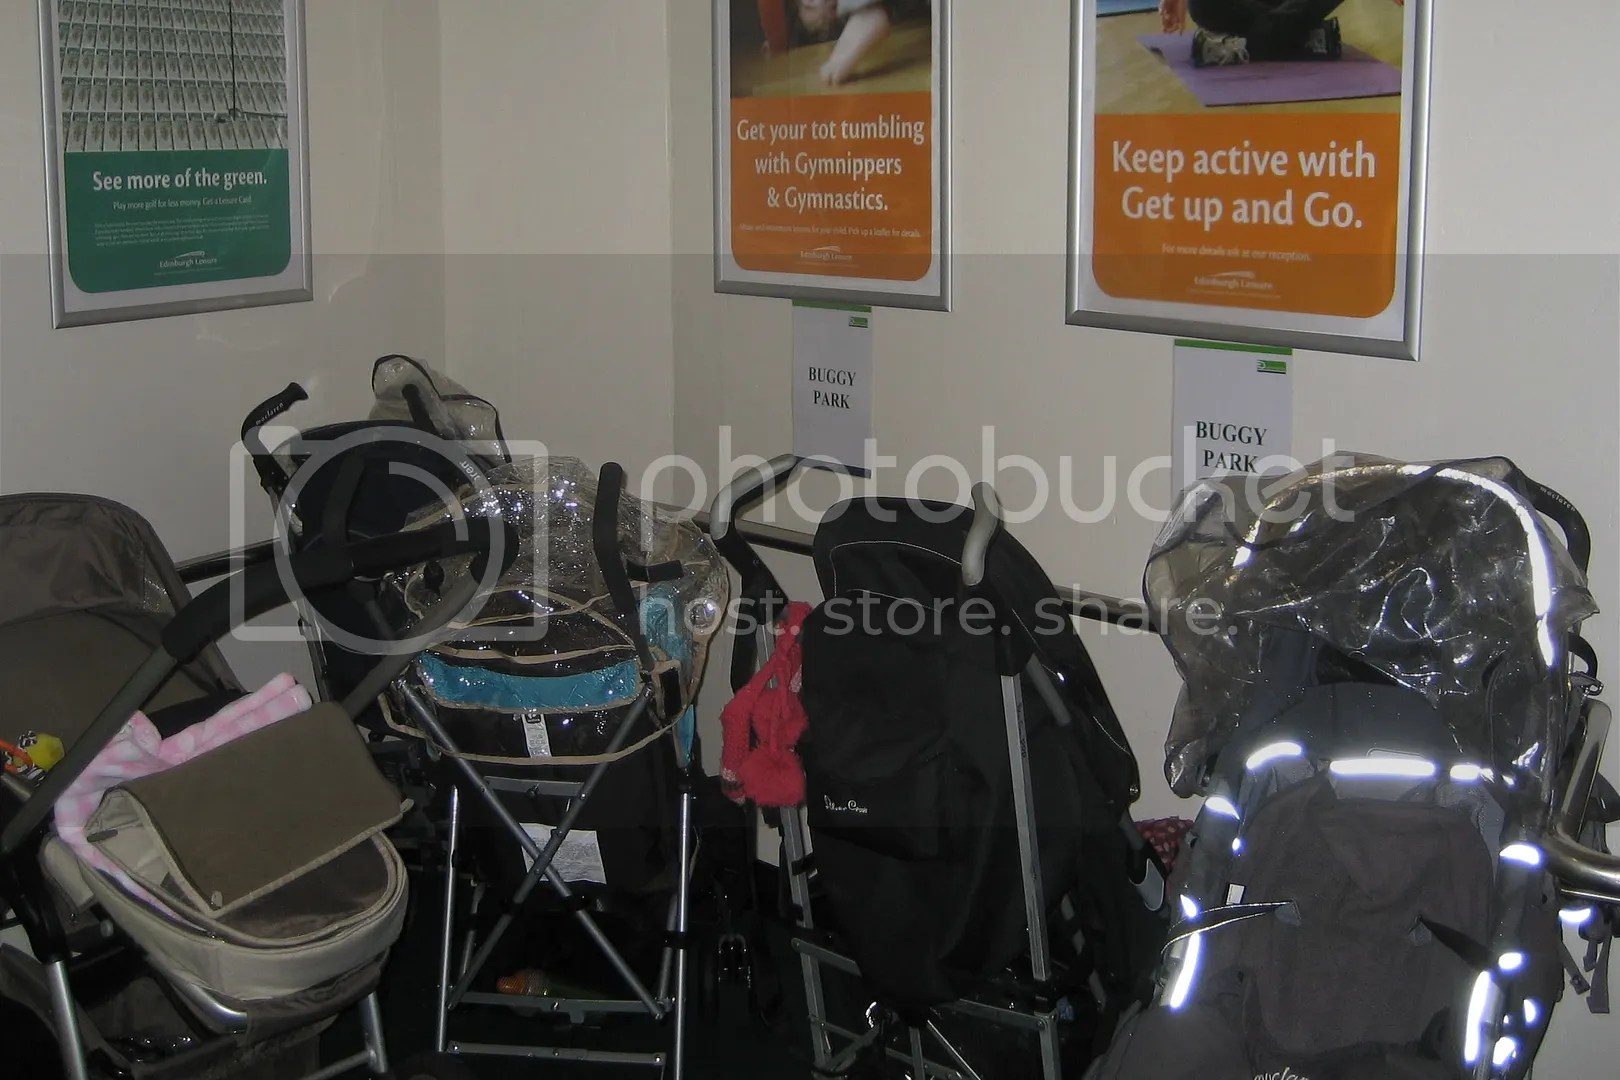 Buggy park at Leith Victoria full up